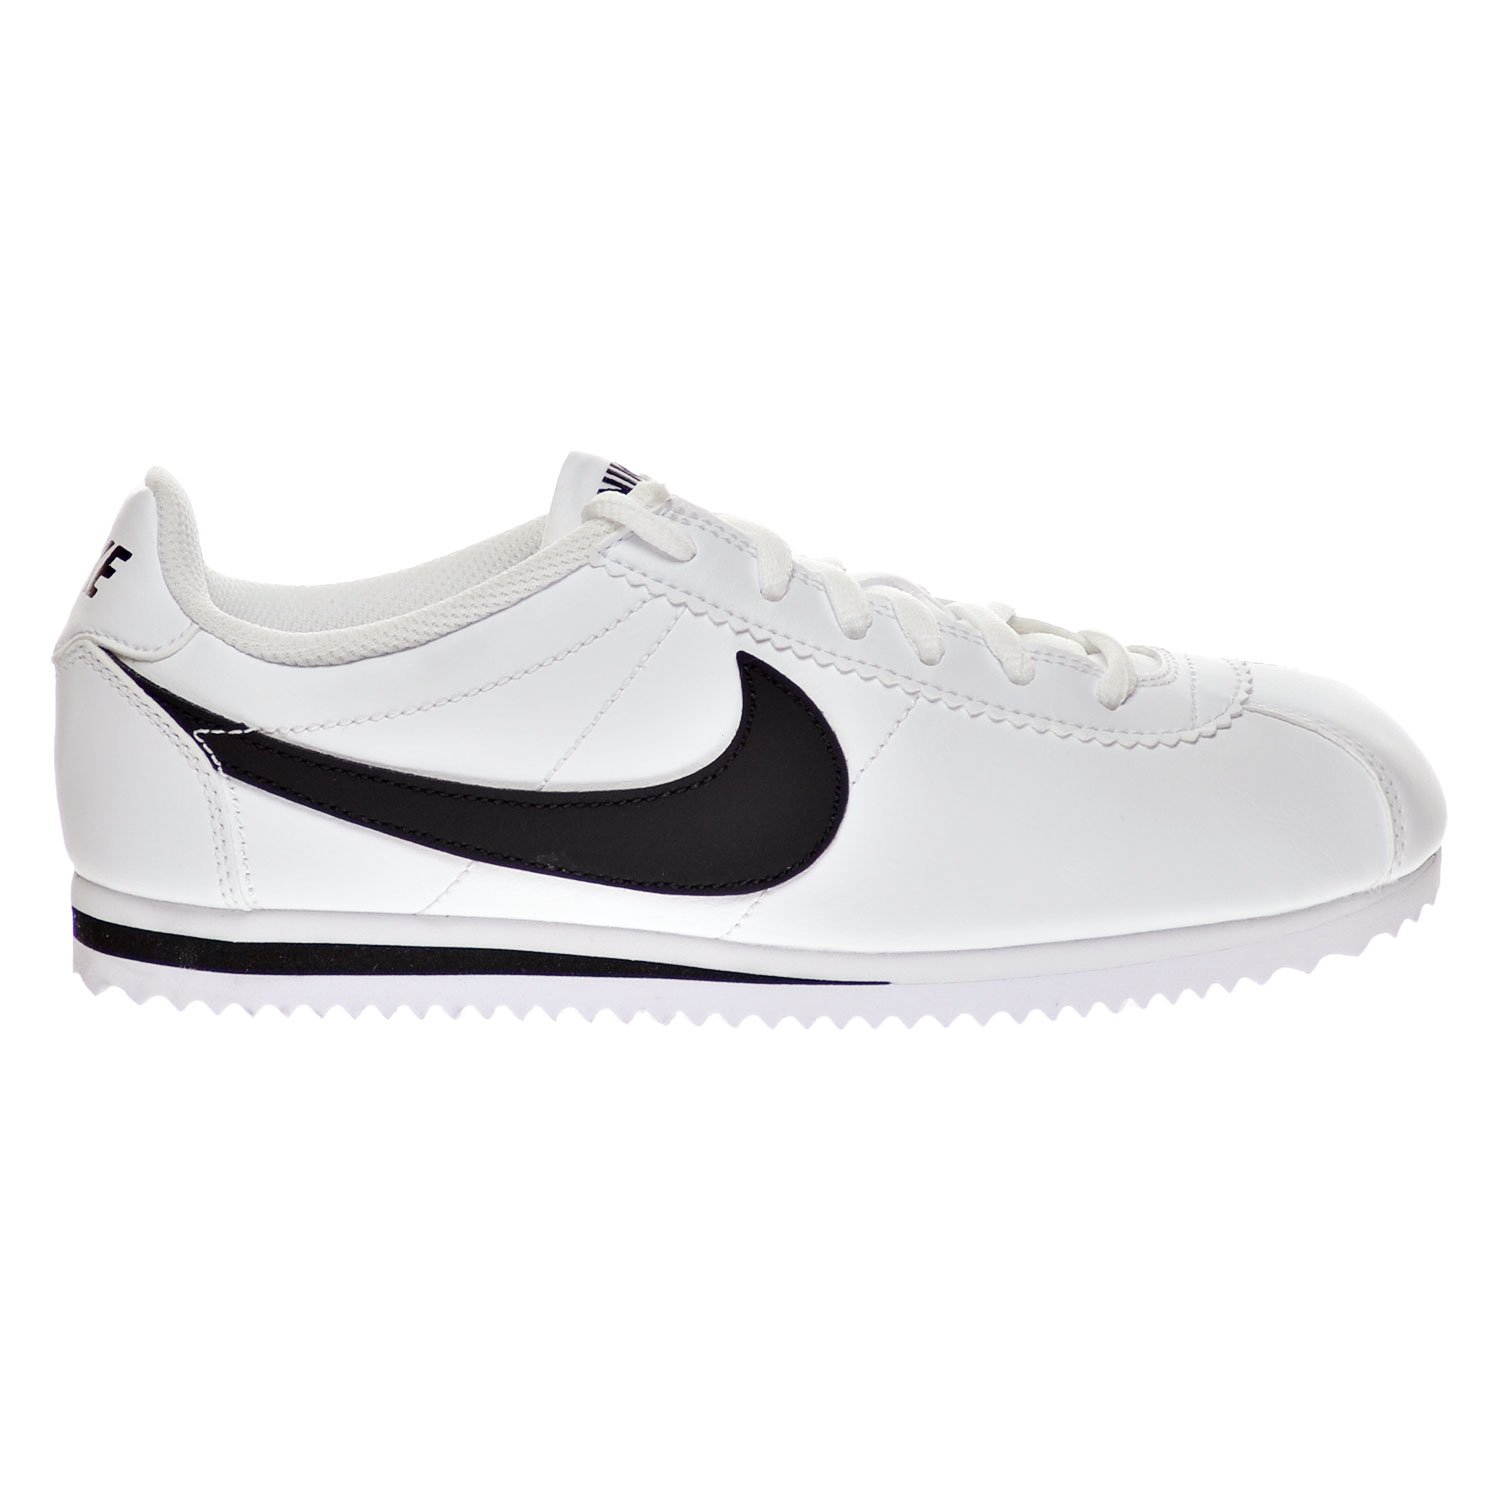 Amazoncom Nike Cortez GS Big Kids Shoes WhiteBlack 749482102 7 M  US Shoes